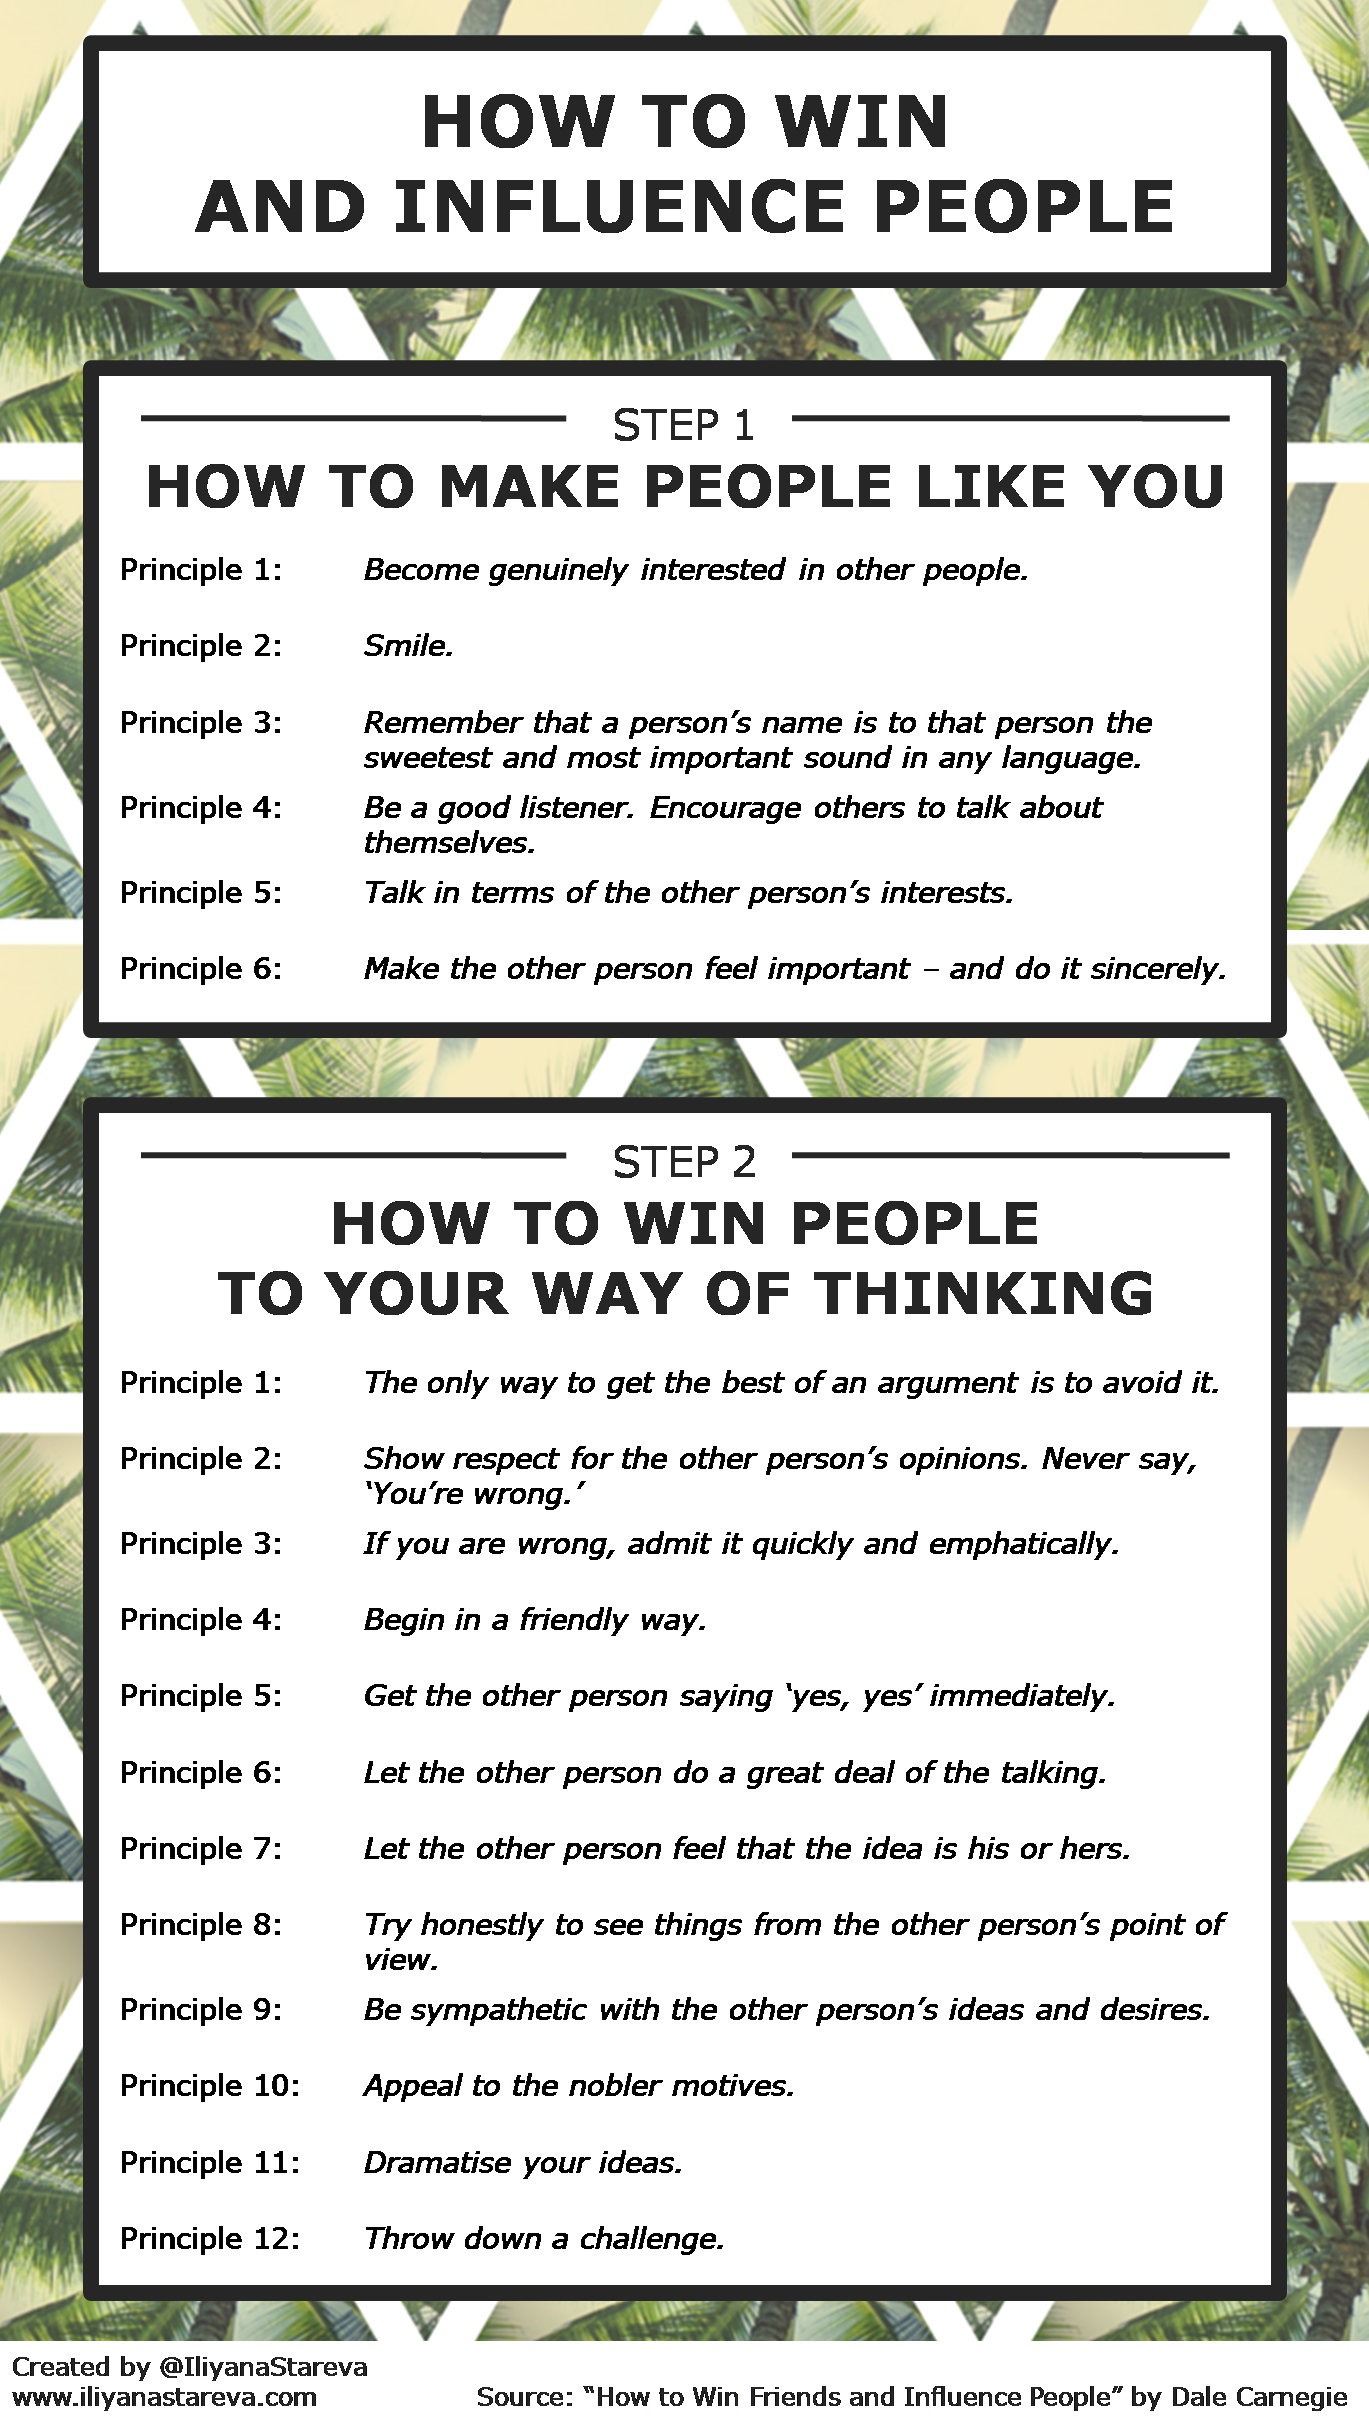 How-to-win-and-influence-people-infographic